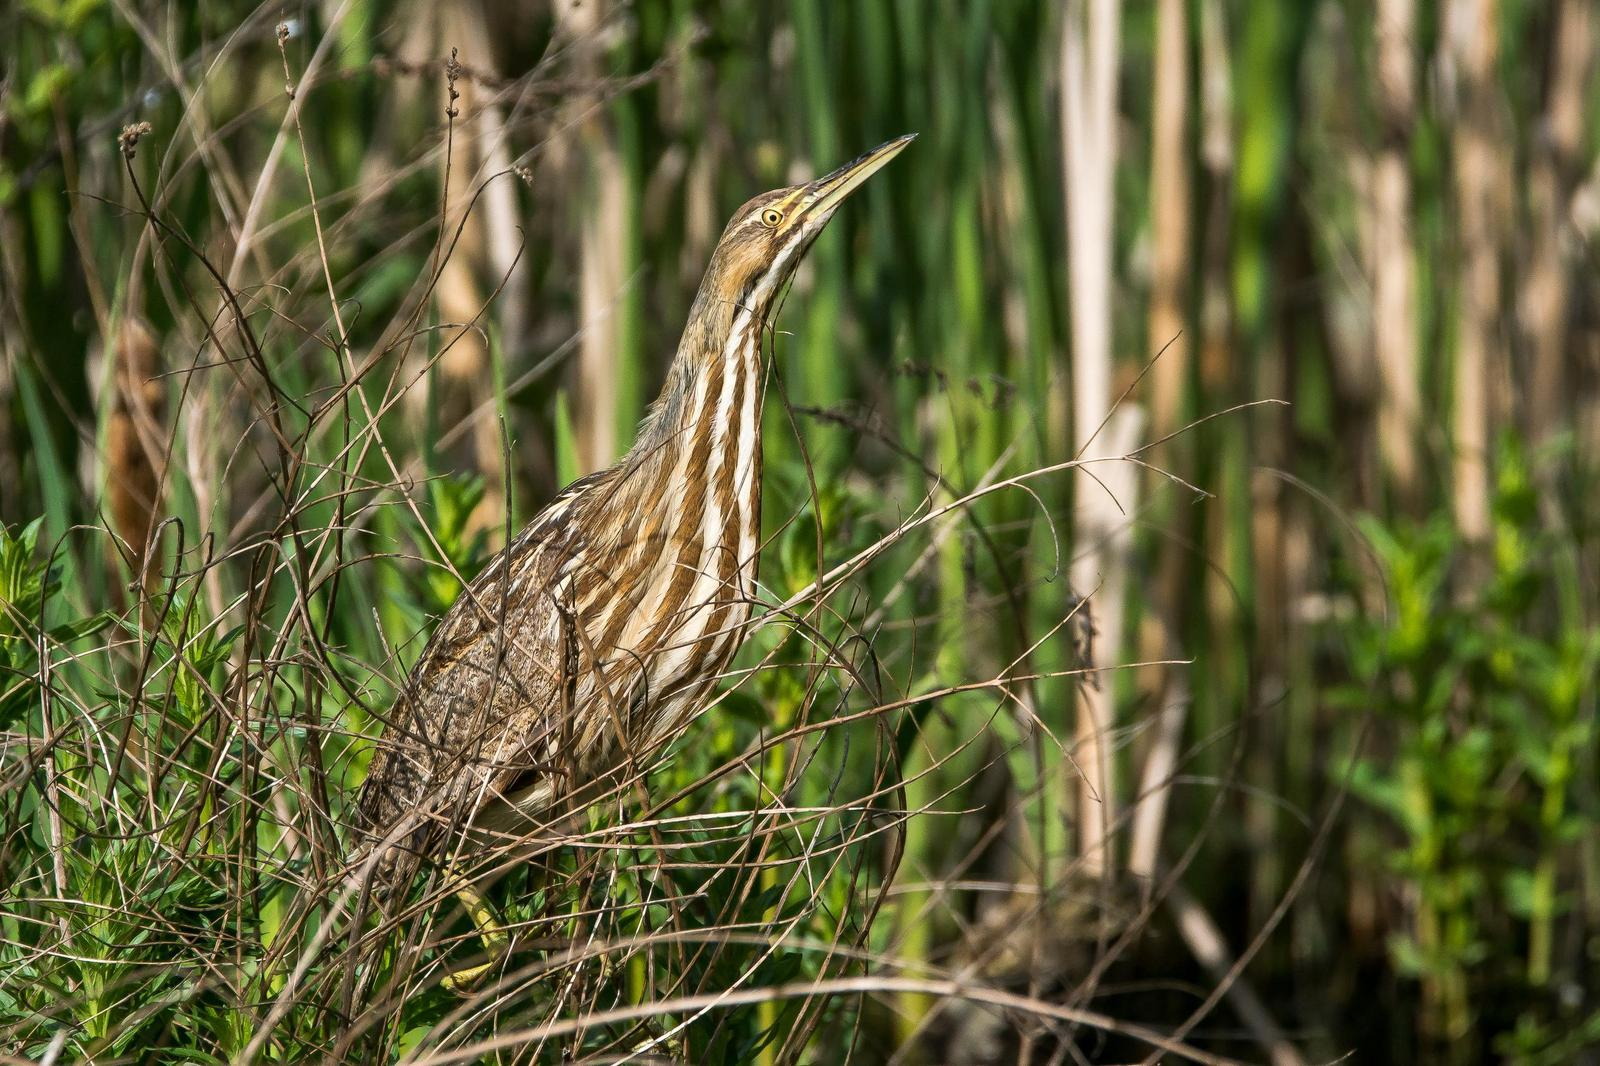 American Bittern Photo by Gerald Hoekstra